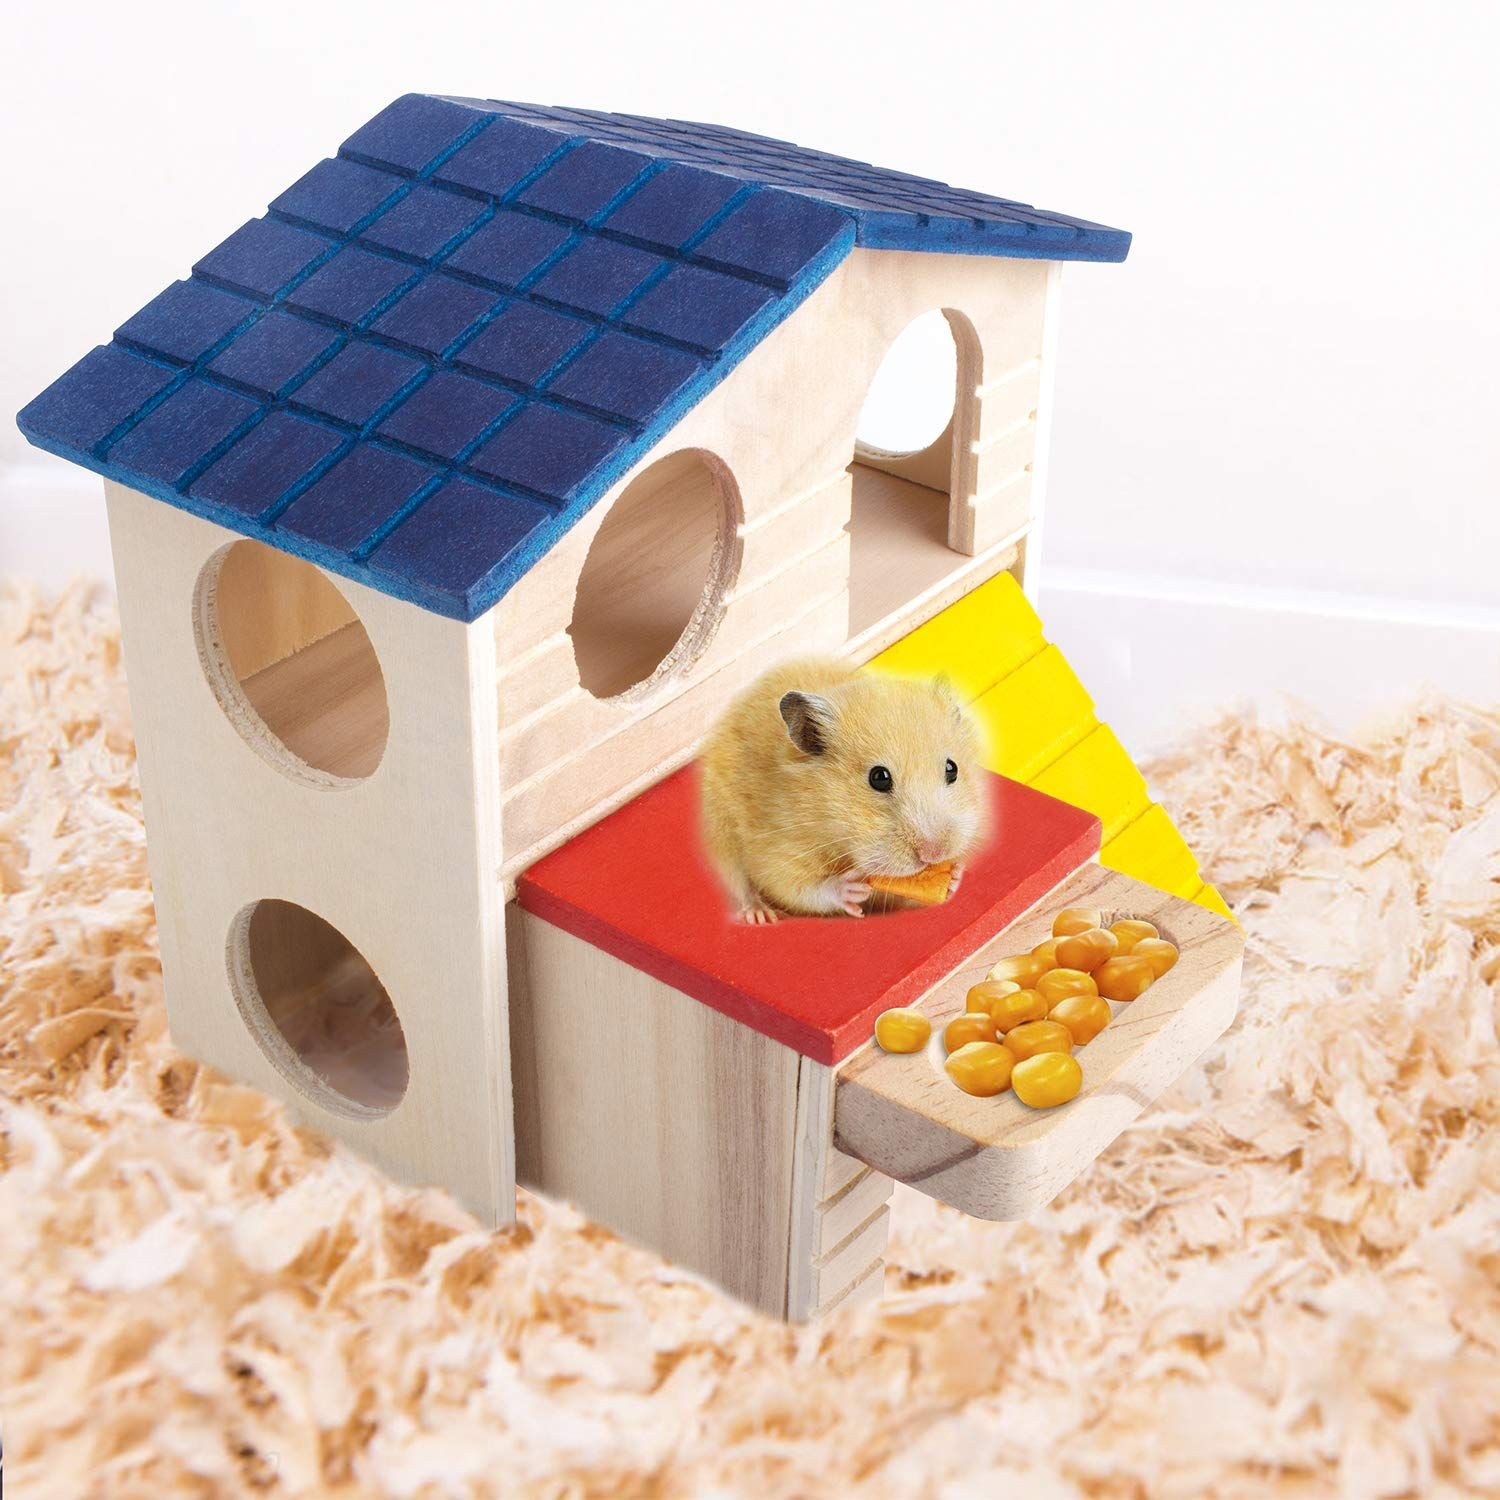 Hamster Deluxe Wooden House With Slide Hideout Hut Habitat For Small Animals Dwarf Mice Gerbil Sugar Gliders In 2020 Small Pets Sugar Glider Toys Sugar Glider Habitat